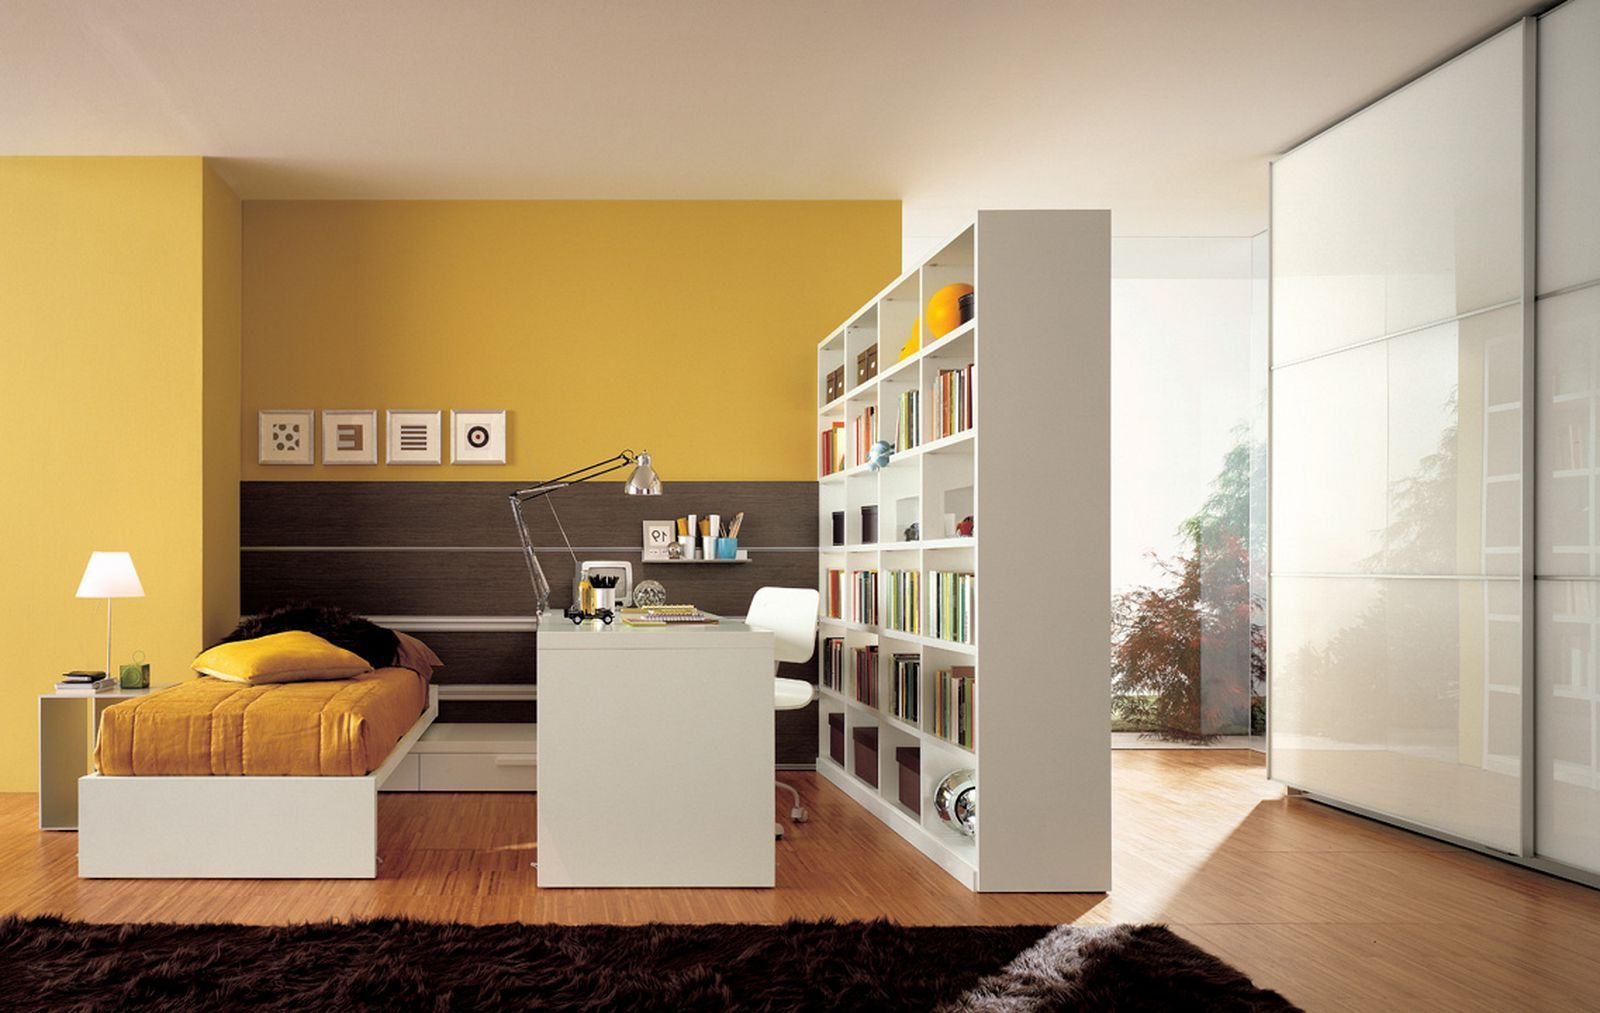 Wall Separator Ideas Interior  Unique Room Divider Ideas Without Walls  Bookshelf Is